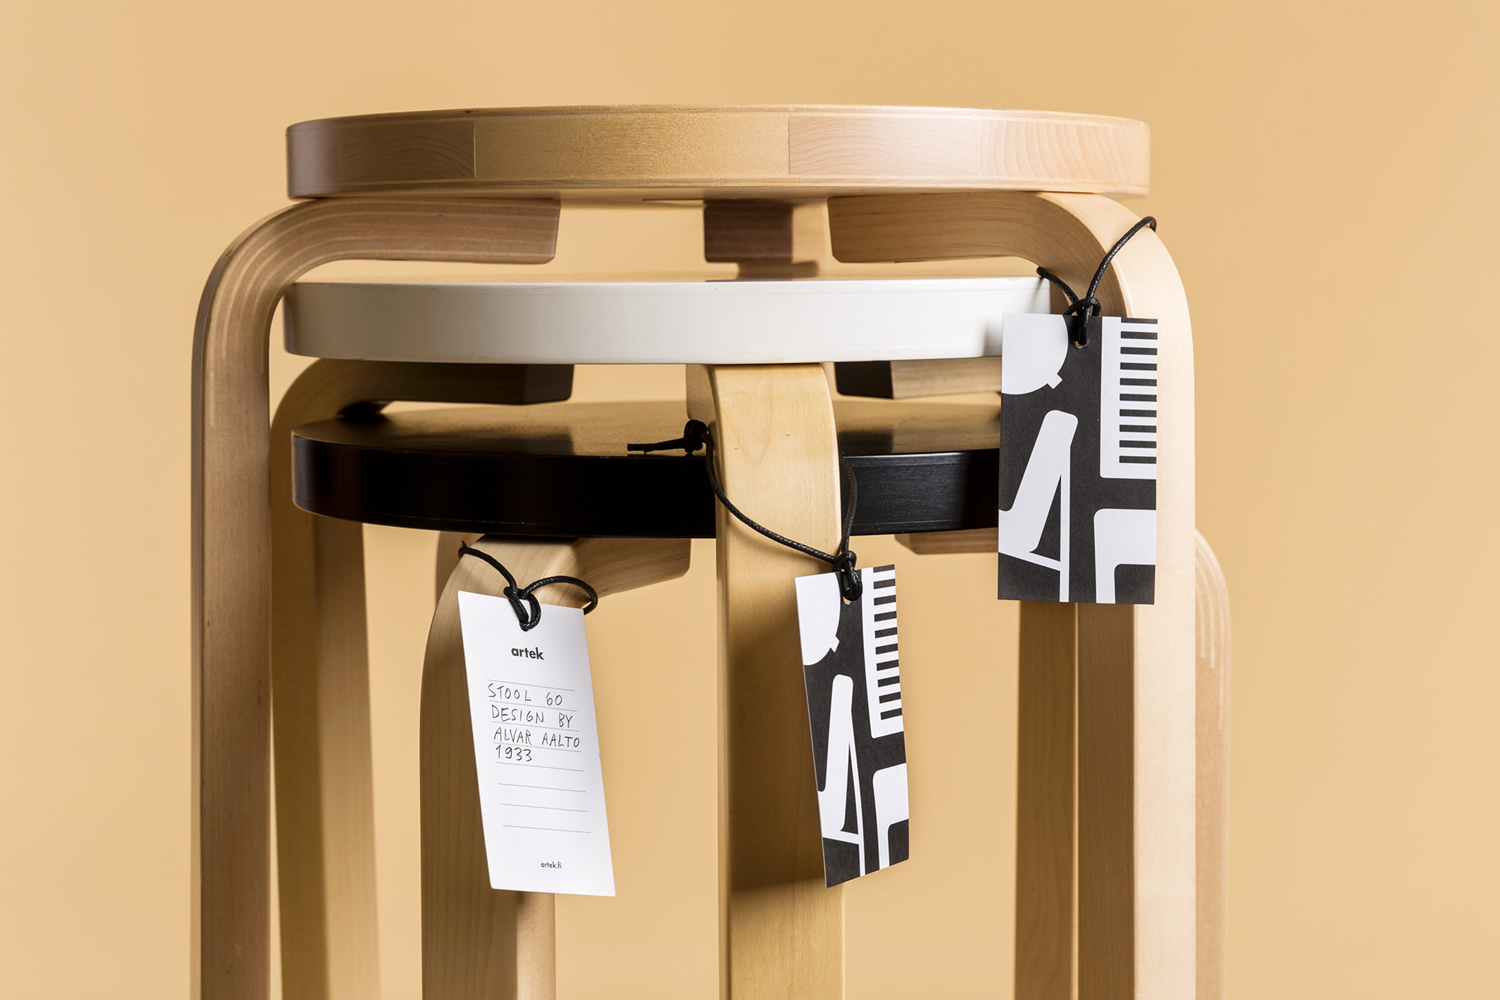 Brand identity and tags by graphic design studio Tsto for furniture and homeware store Artek Helsinki.